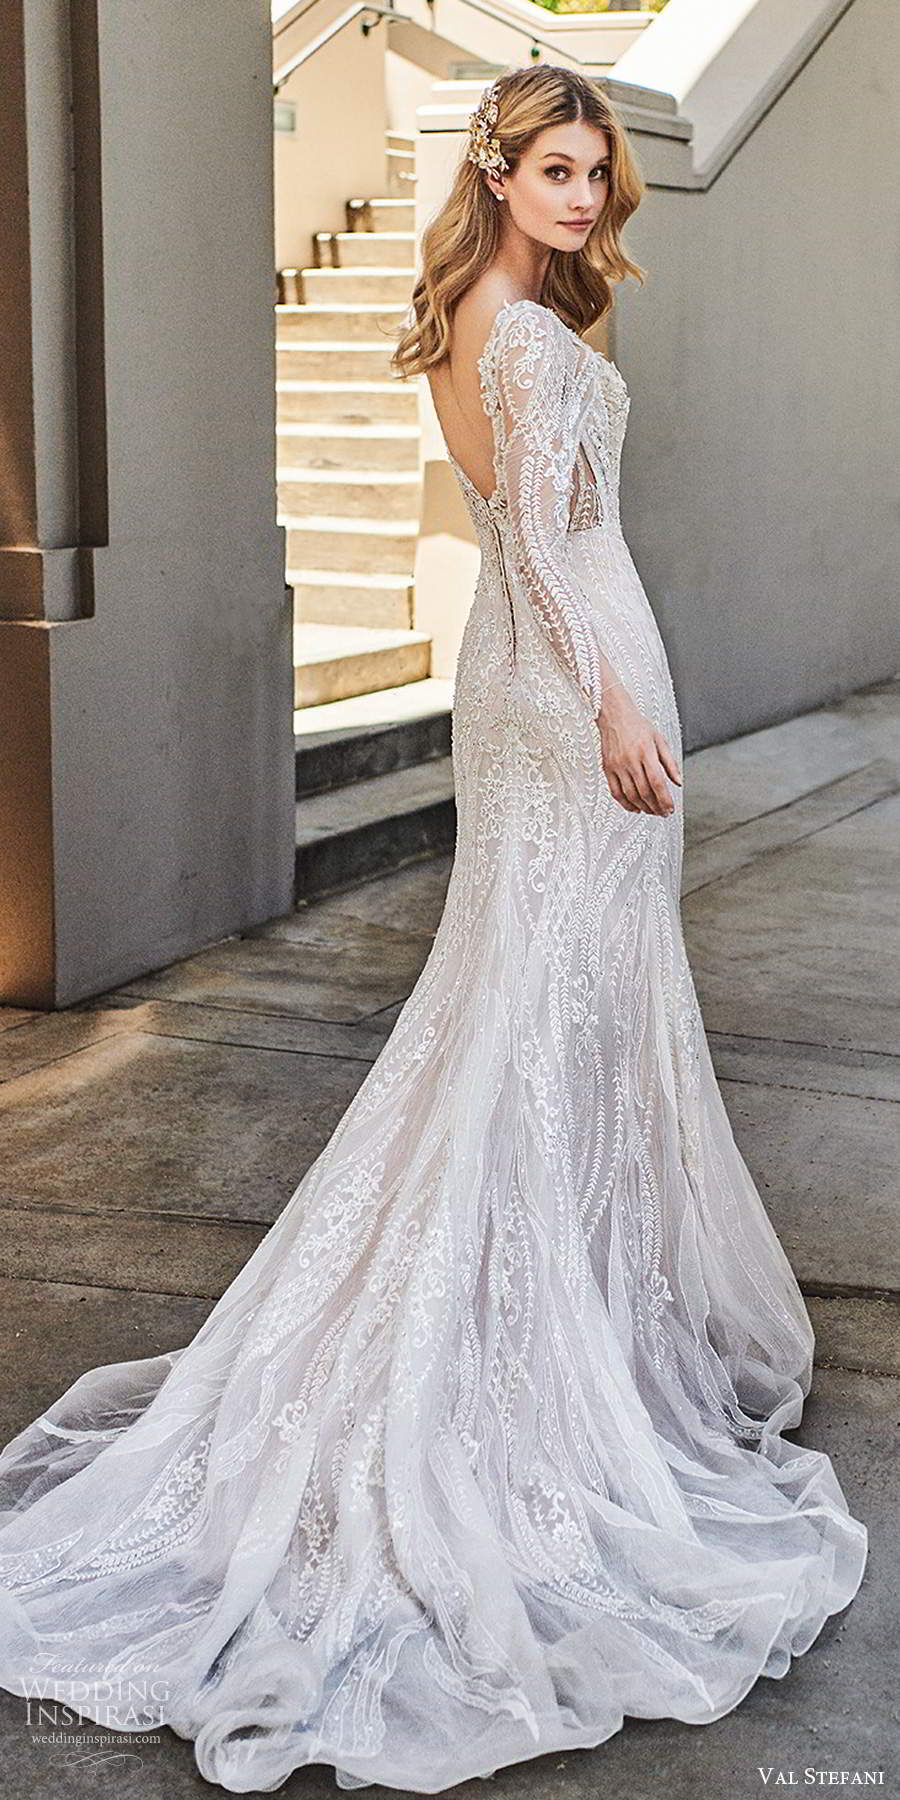 val stefani spring 2020 bridal illusion long sleeves sweetheart neckline fully embellished modified a line mermaid lace wedding dress chapel train (3) bv